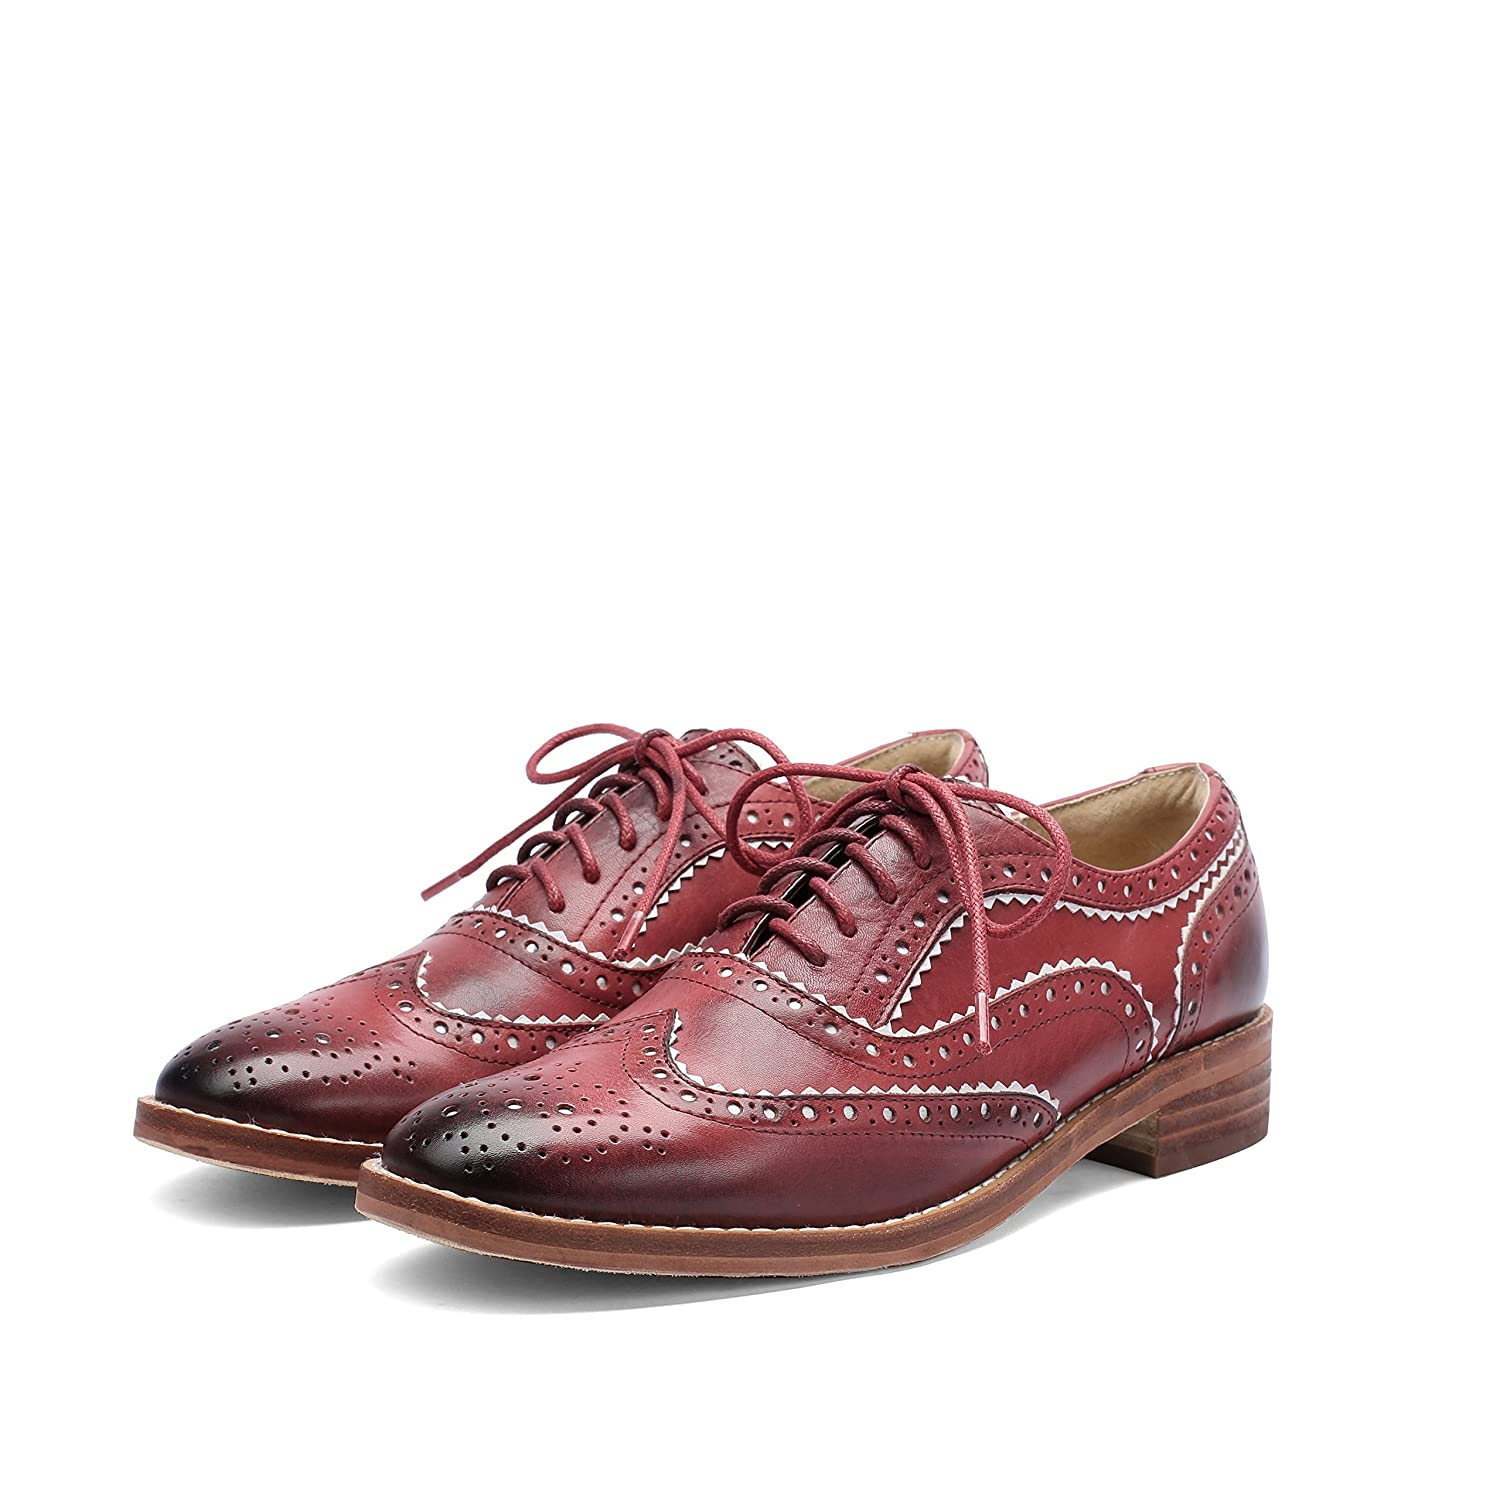 bed02526384b9 MANRINO Breathable Real Leather Upper Perforated Lace Up Wingtip Womens  Oxford Flats Saddle Shoes